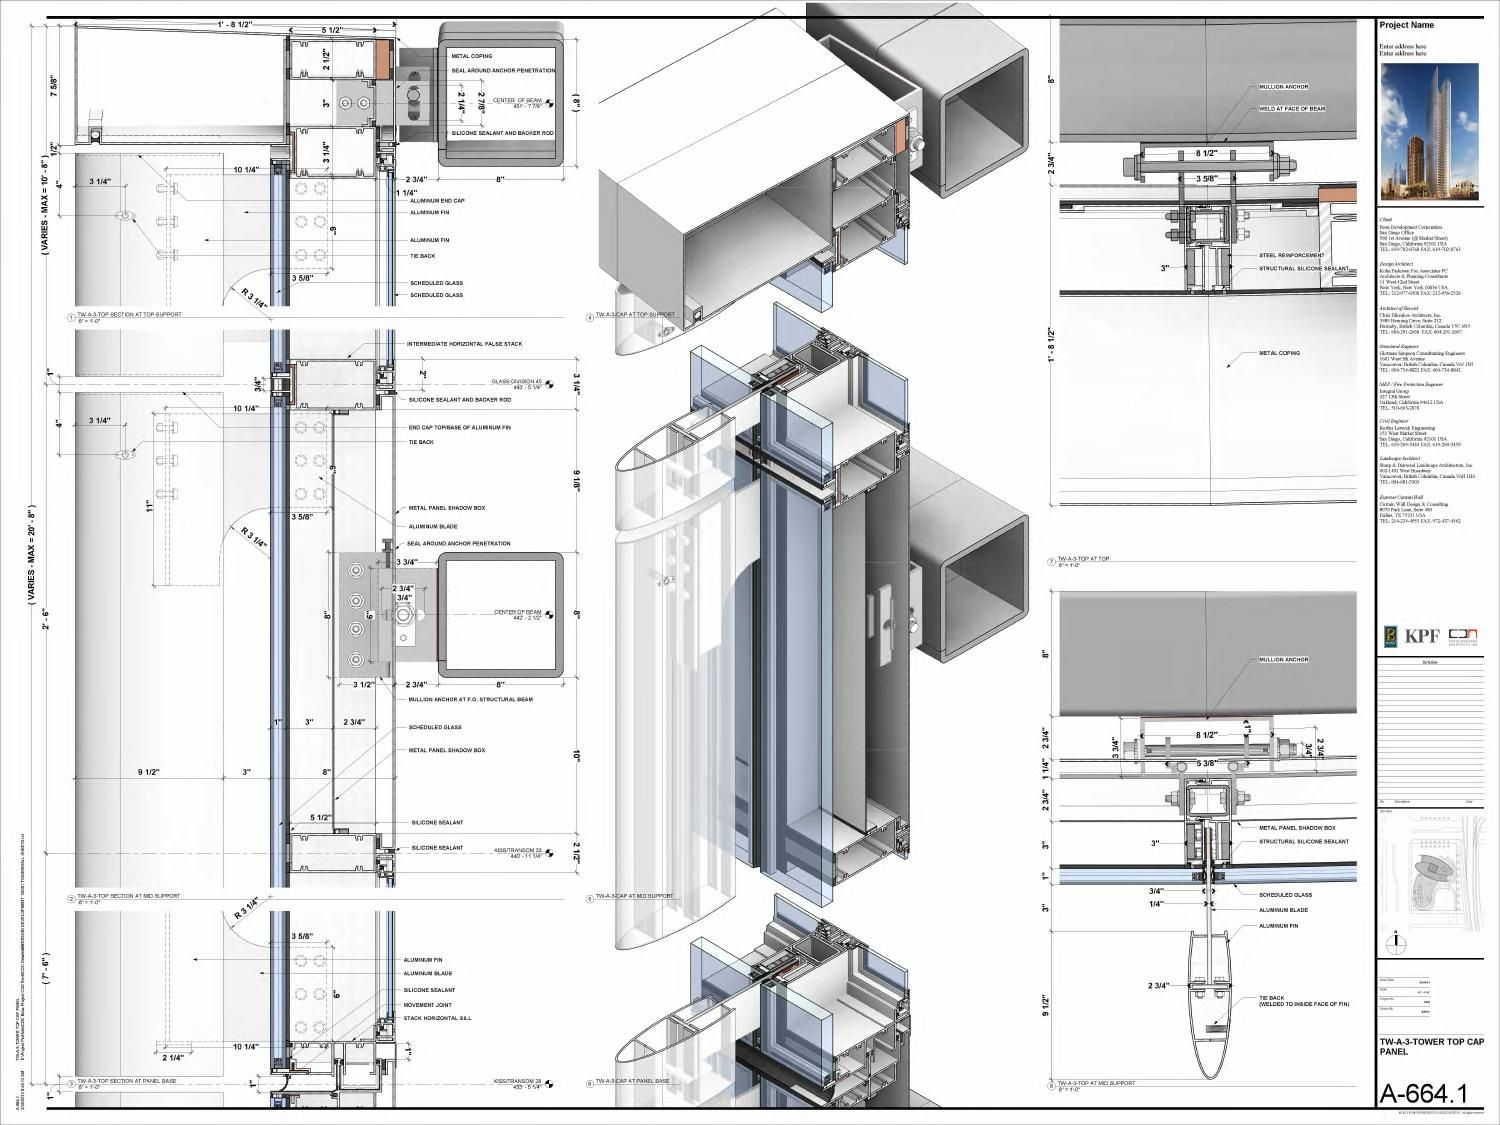 Nathaniel richards revit sample | Revit | Revit architecture